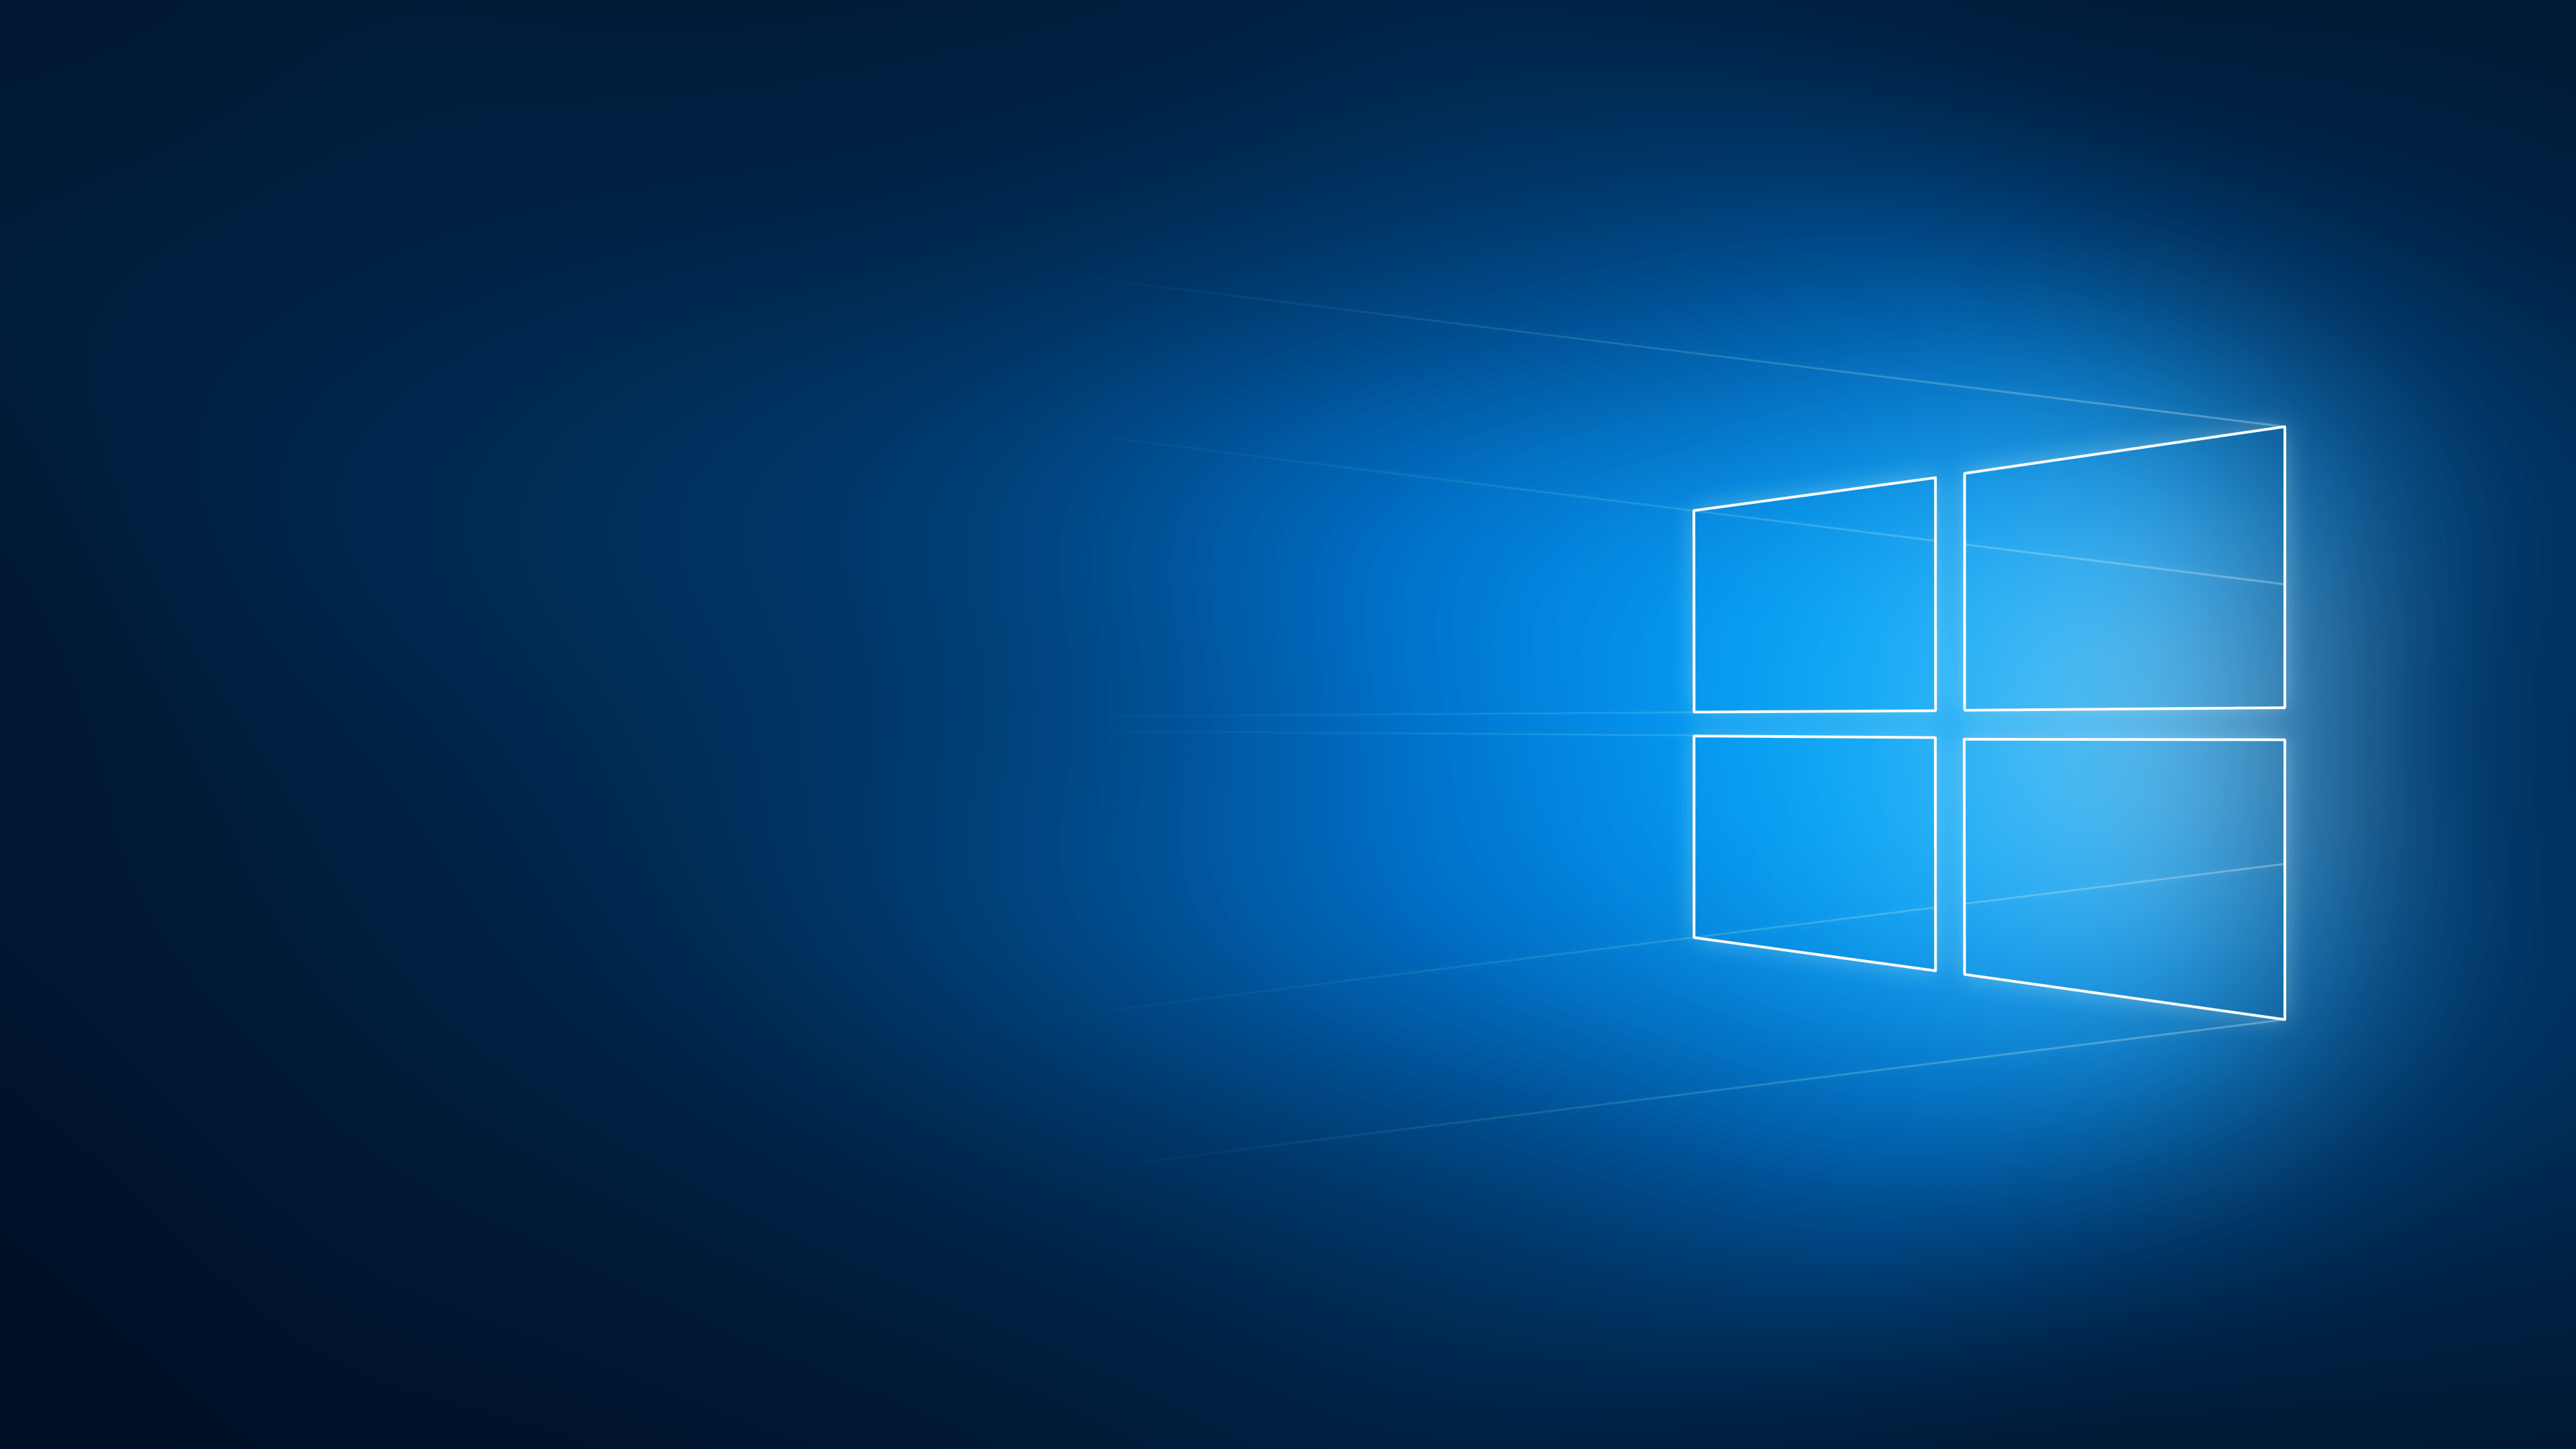 Minimalist Windows Wallpapers Top Free Minimalist Windows